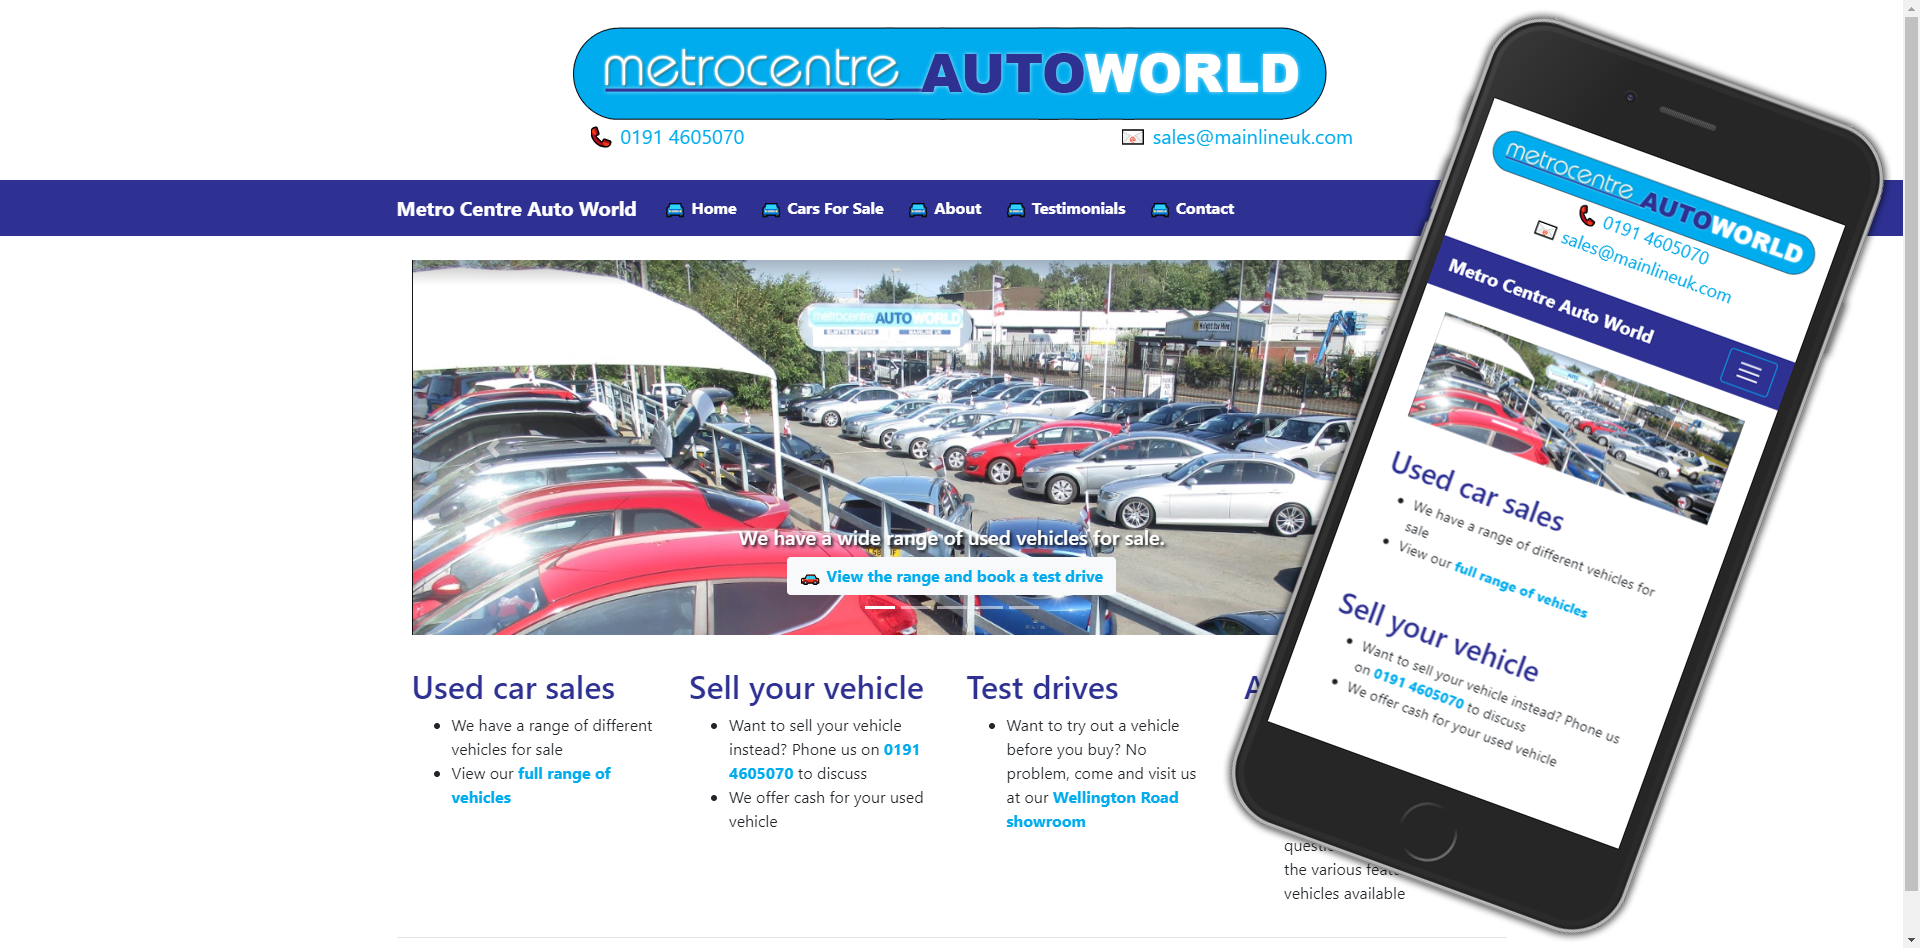 Metro Centre Auto World